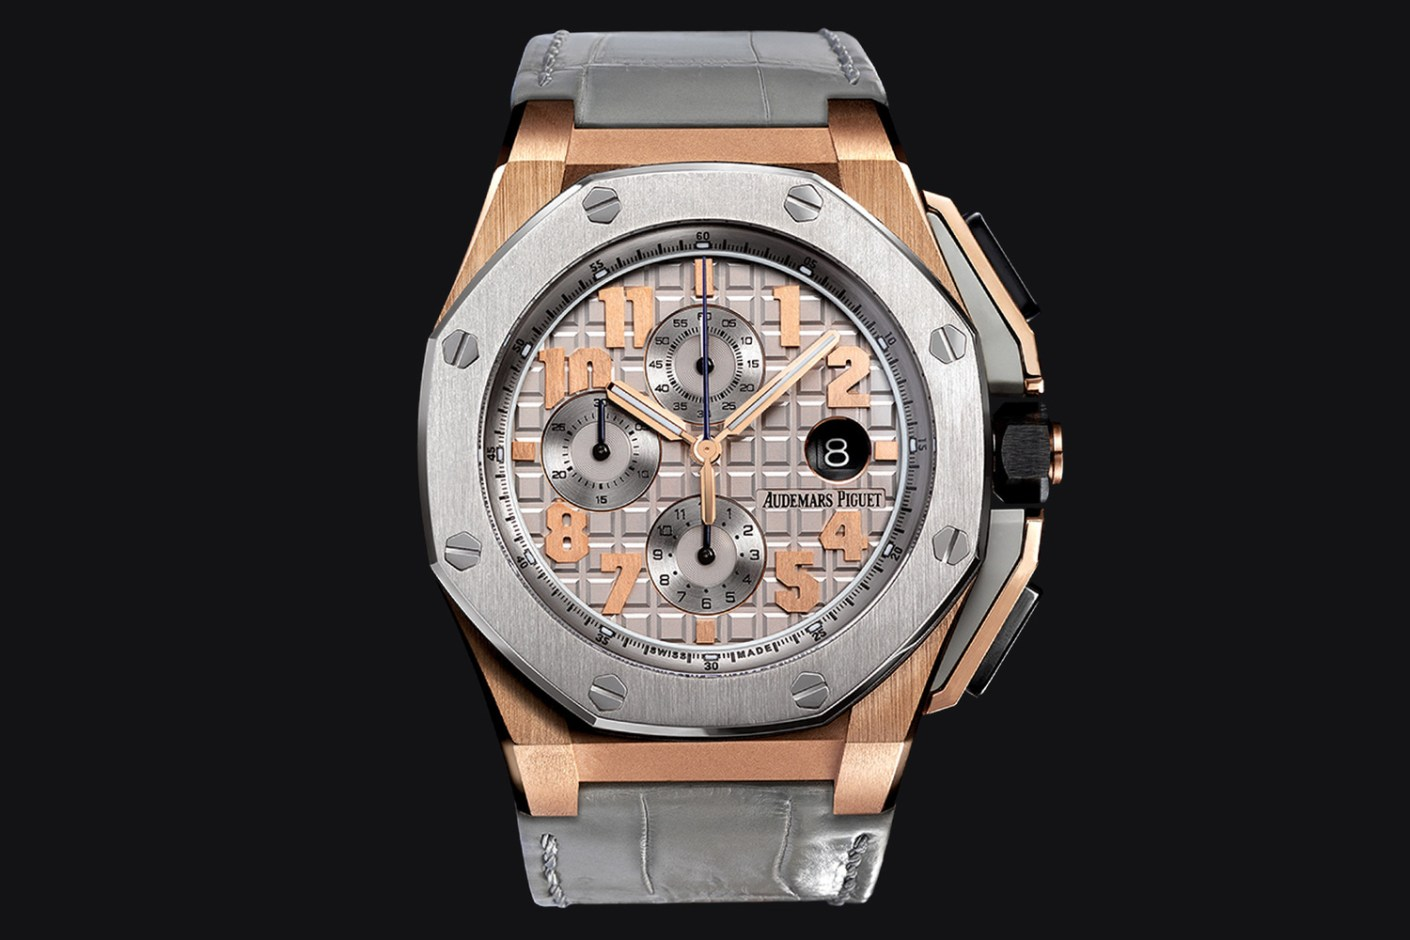 Image of Audemars Piguet Royal Oak Offshore Chronograph LeBron James